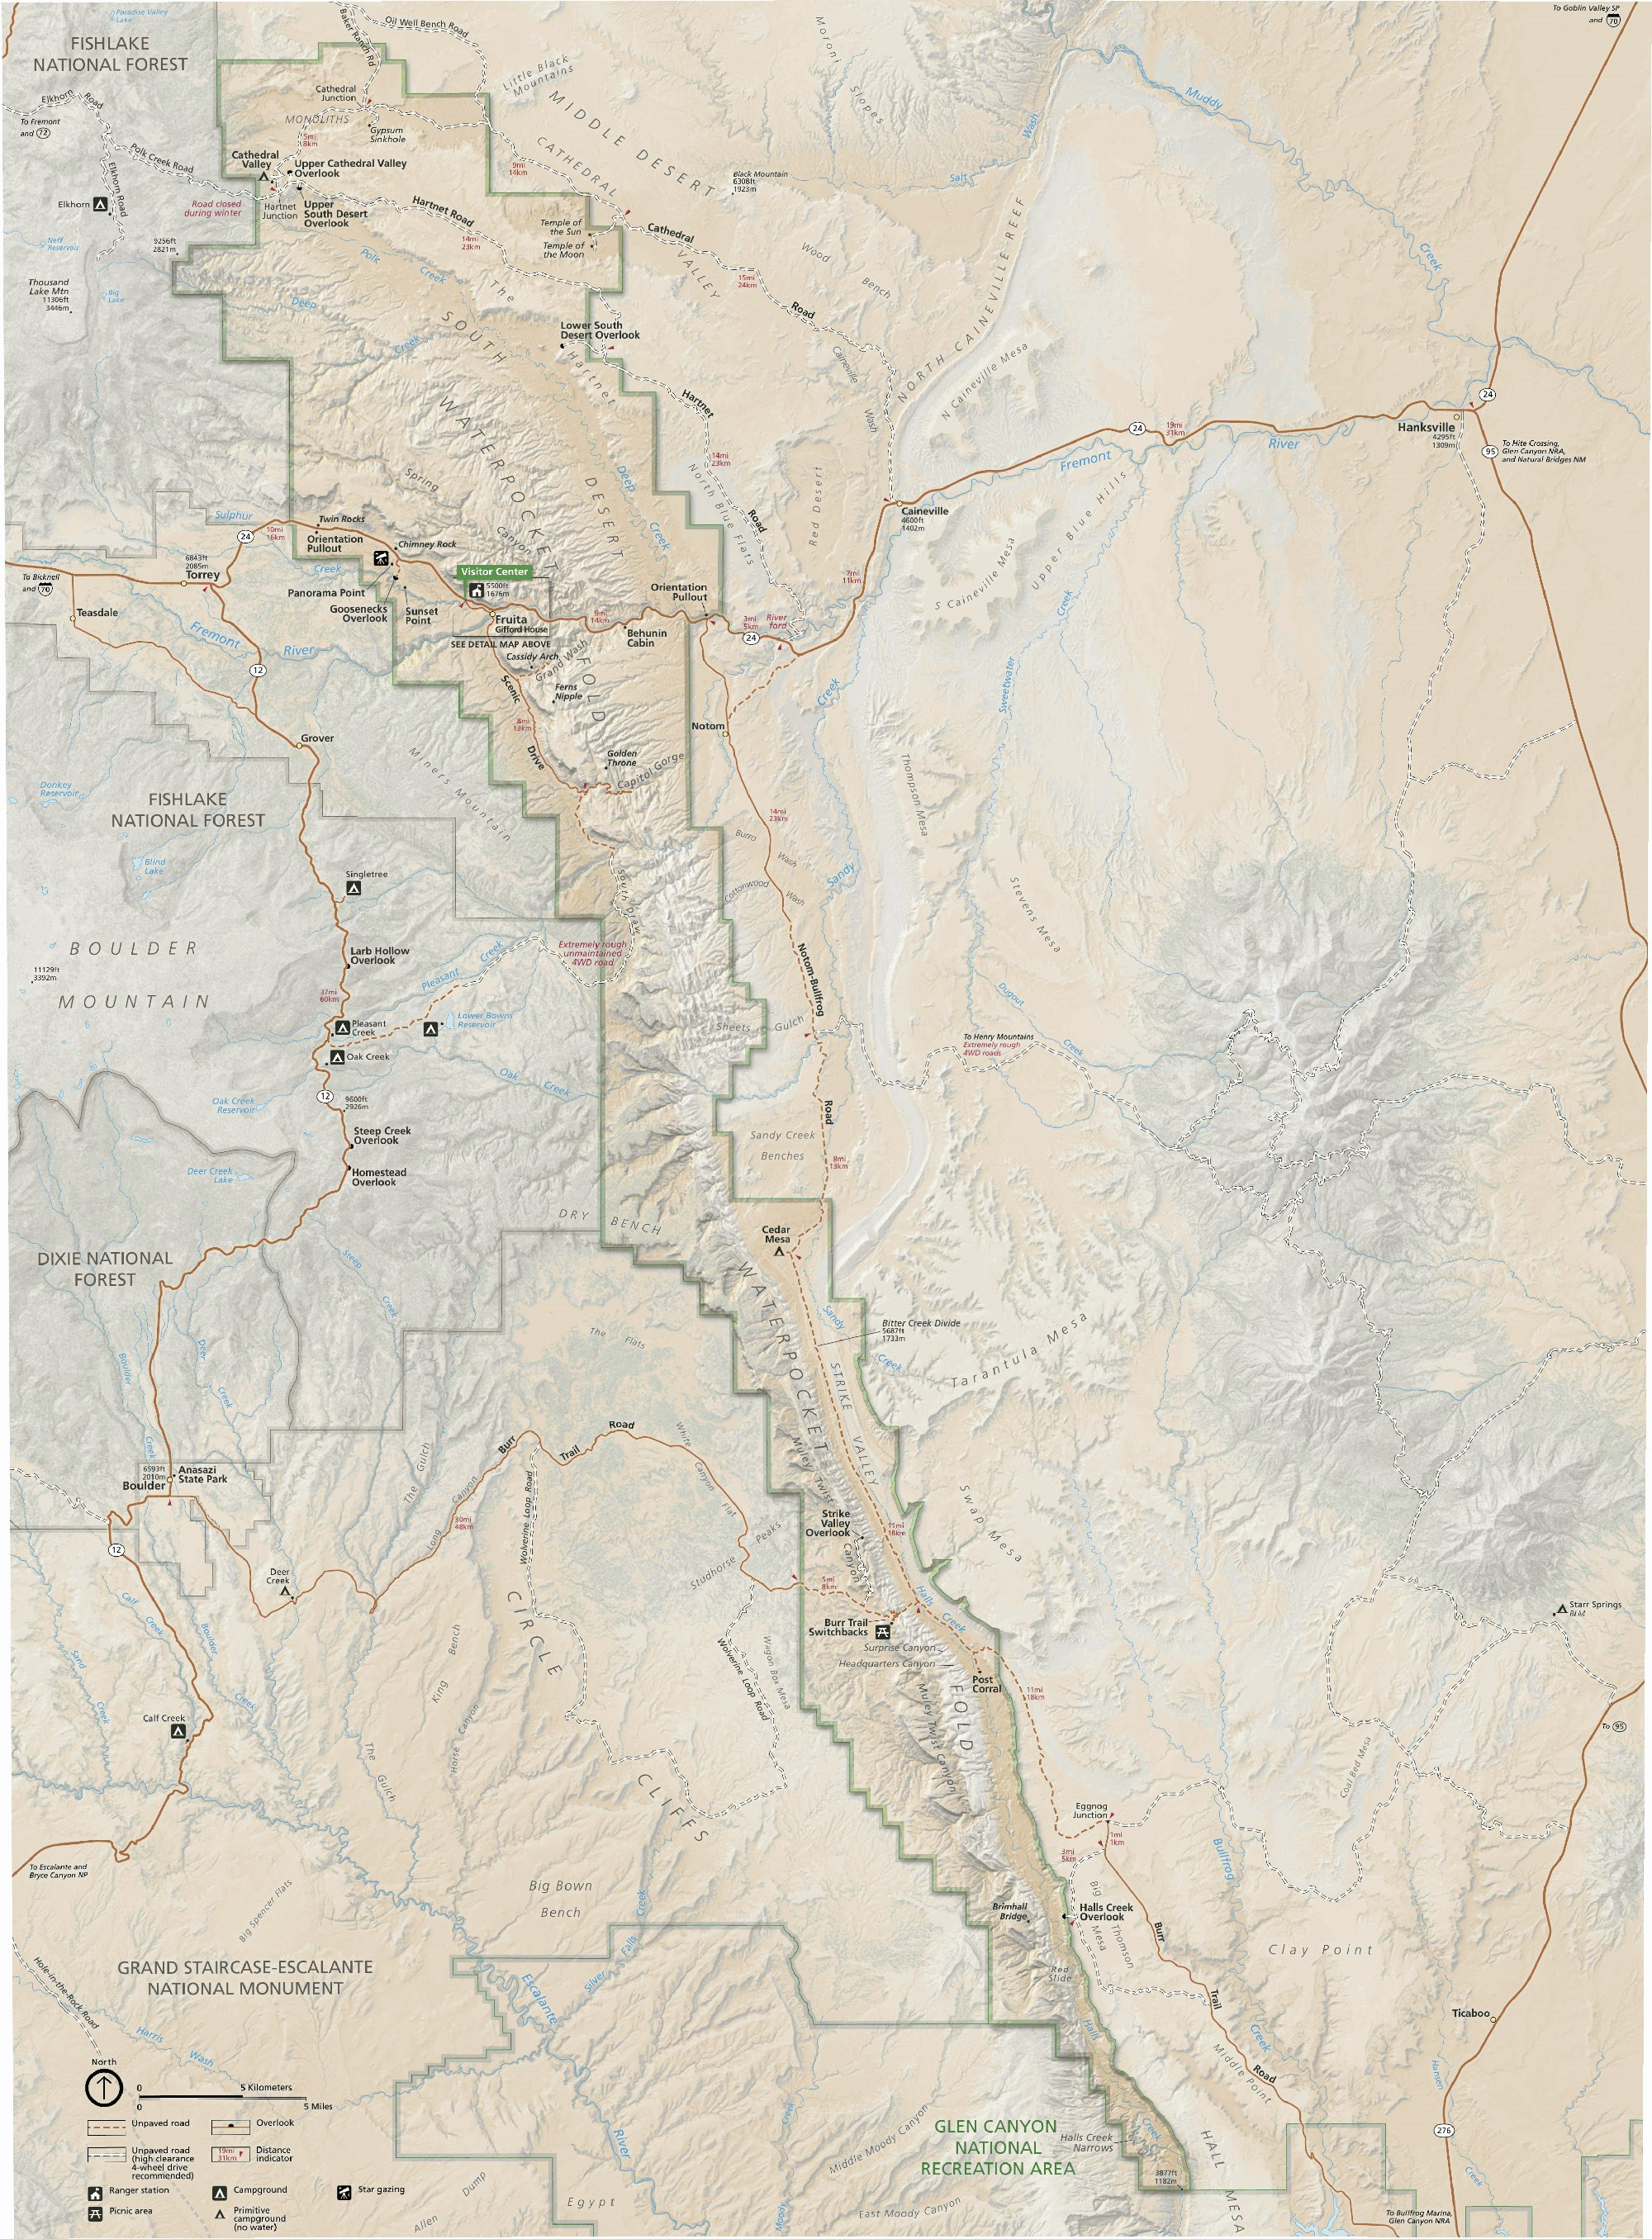 Capitol Reef National Park and vicinity